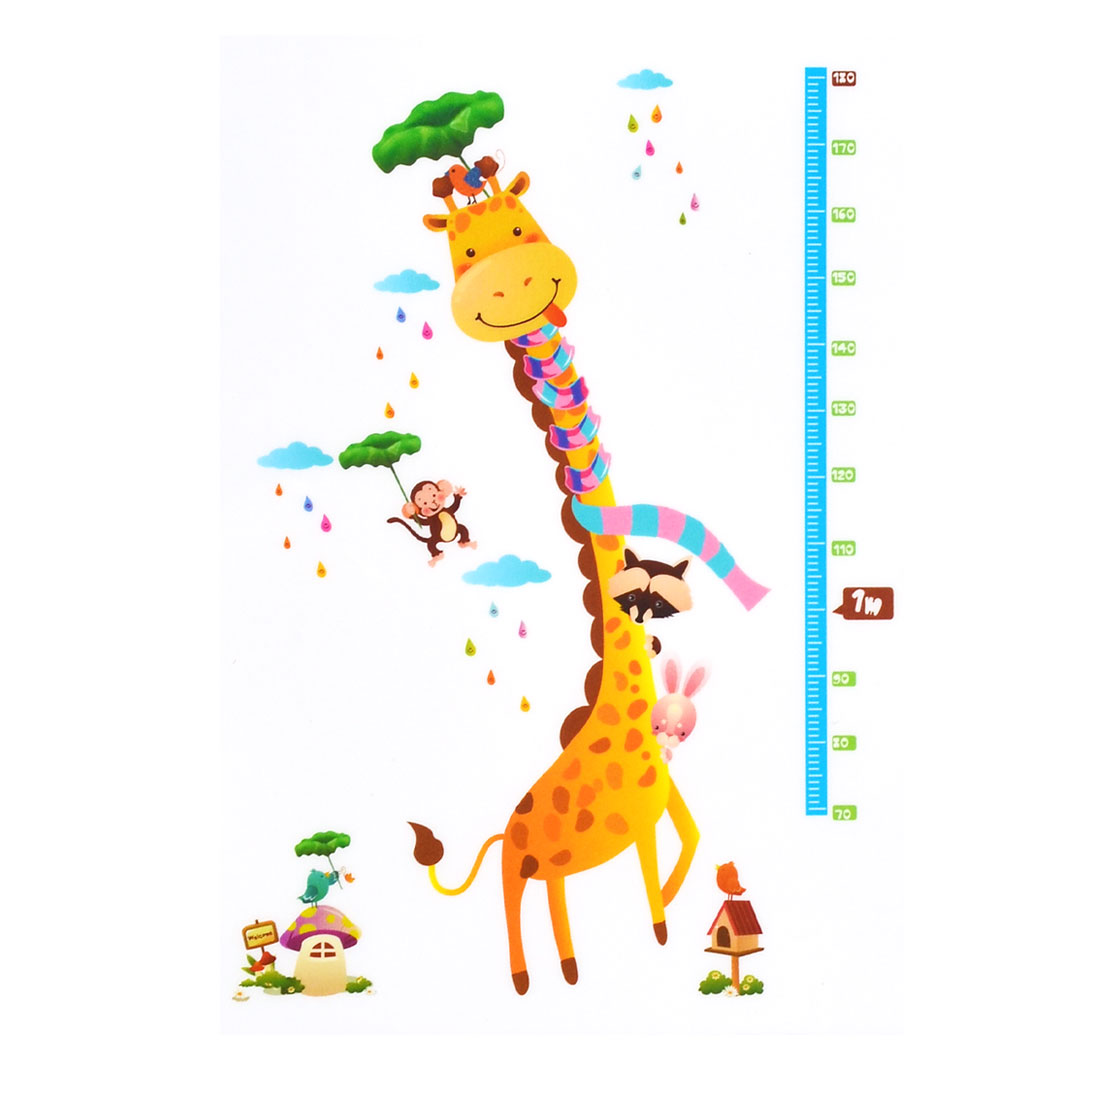 Living Room PVC Giraffe Printed DIY Ornament Wall Sticker Decal Mural 60 x 90cm